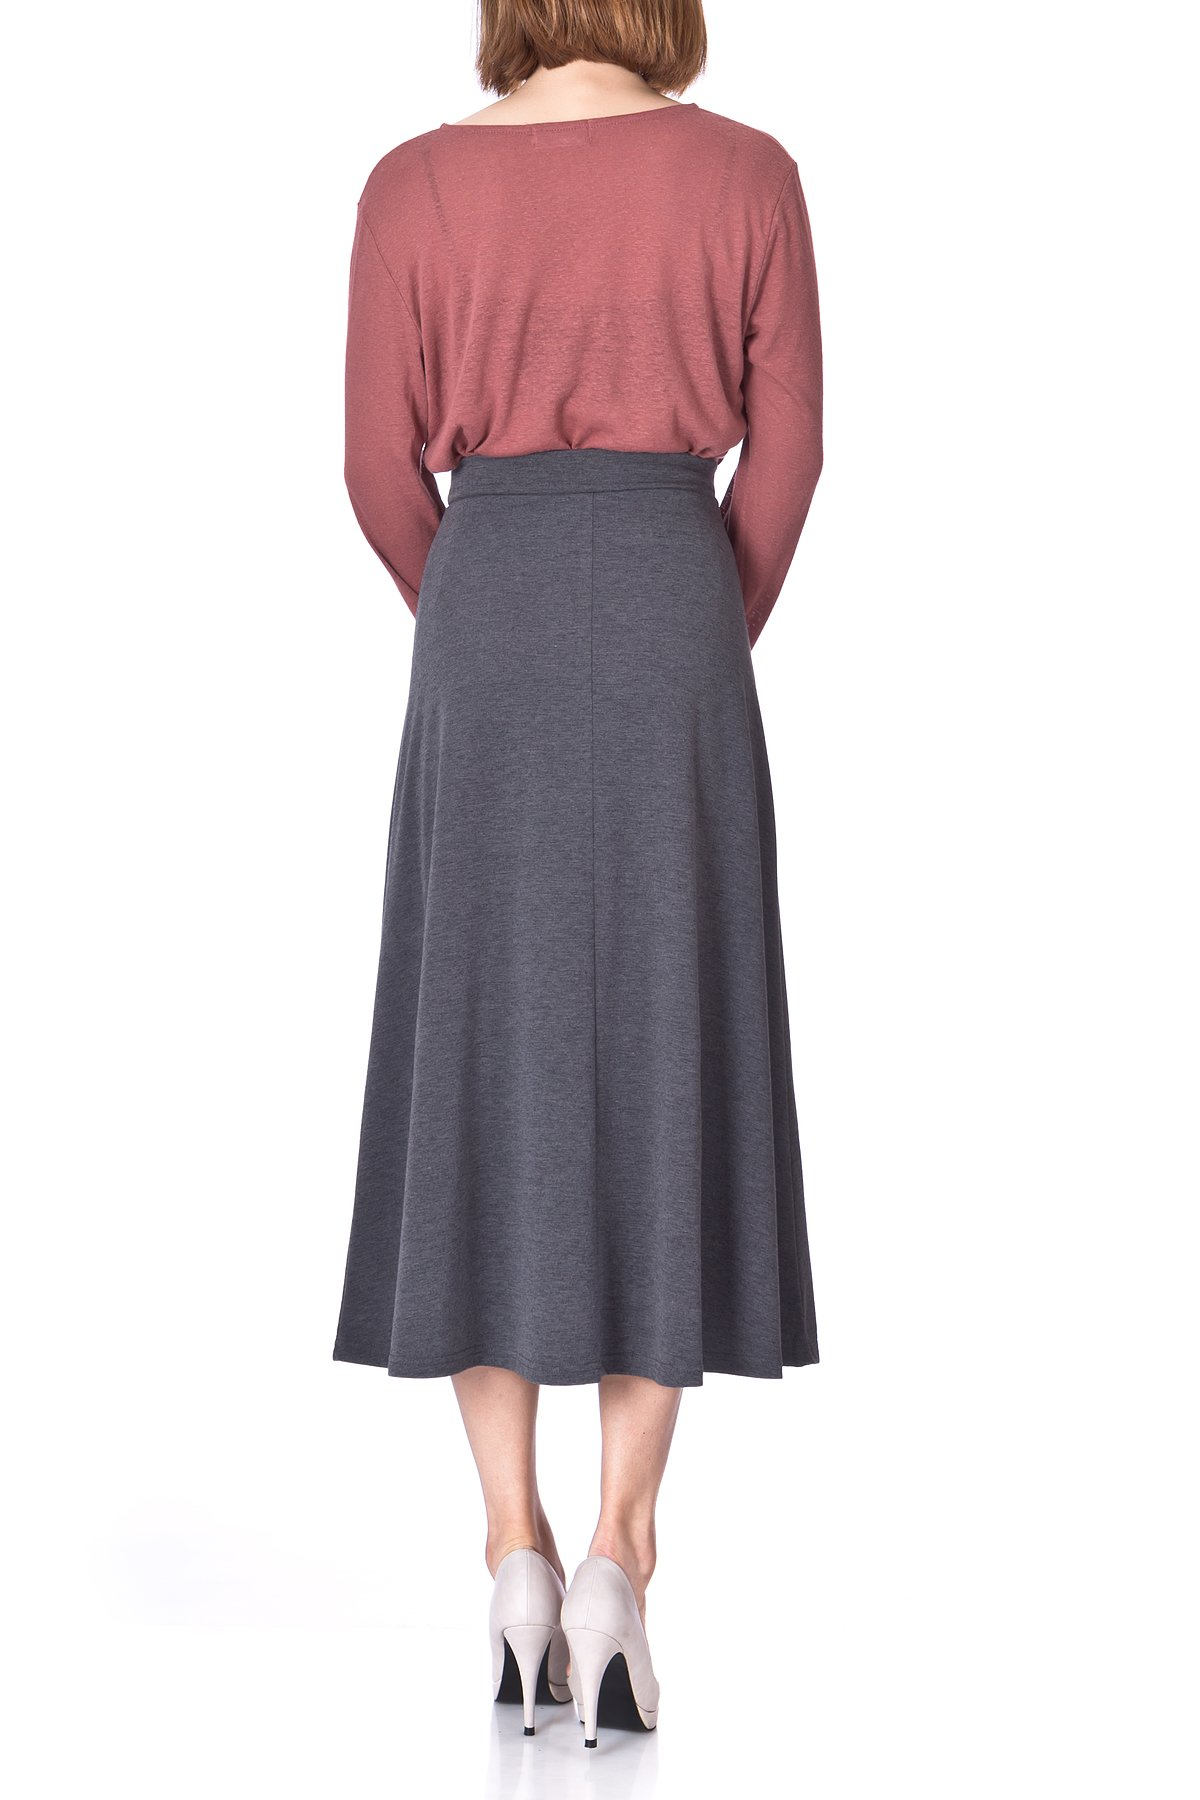 Plain Beauty Casual Office High Waist A line Full Flared Swing Skater Maxi Long Skirt Charcoal 05 1